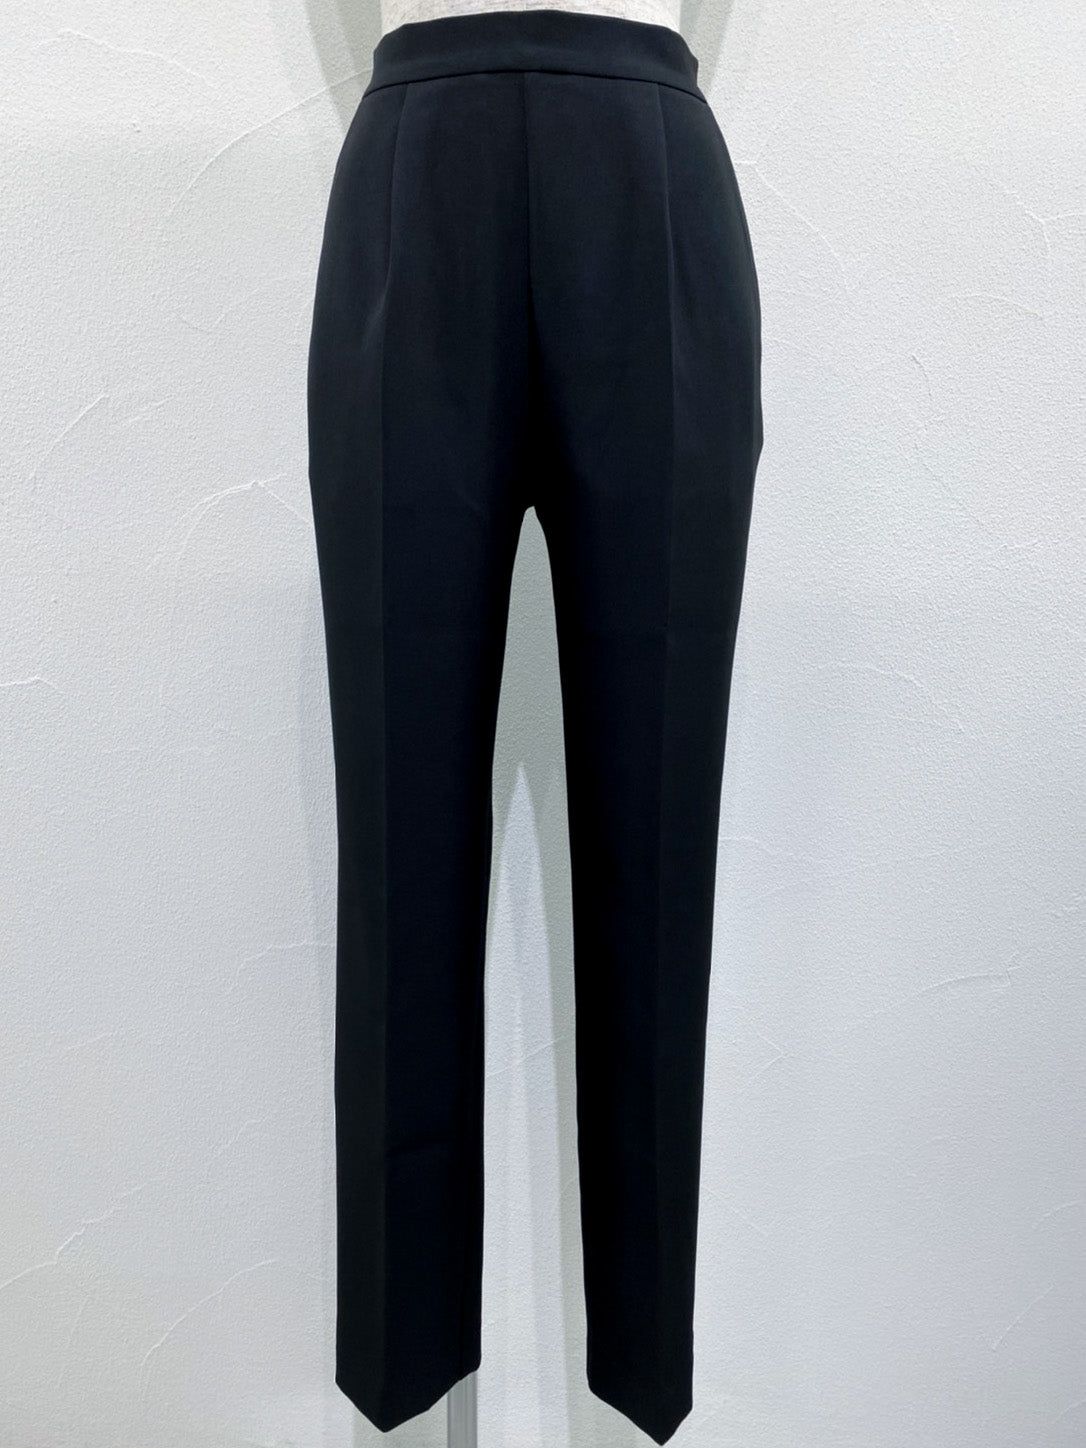 center crease tapered  pants